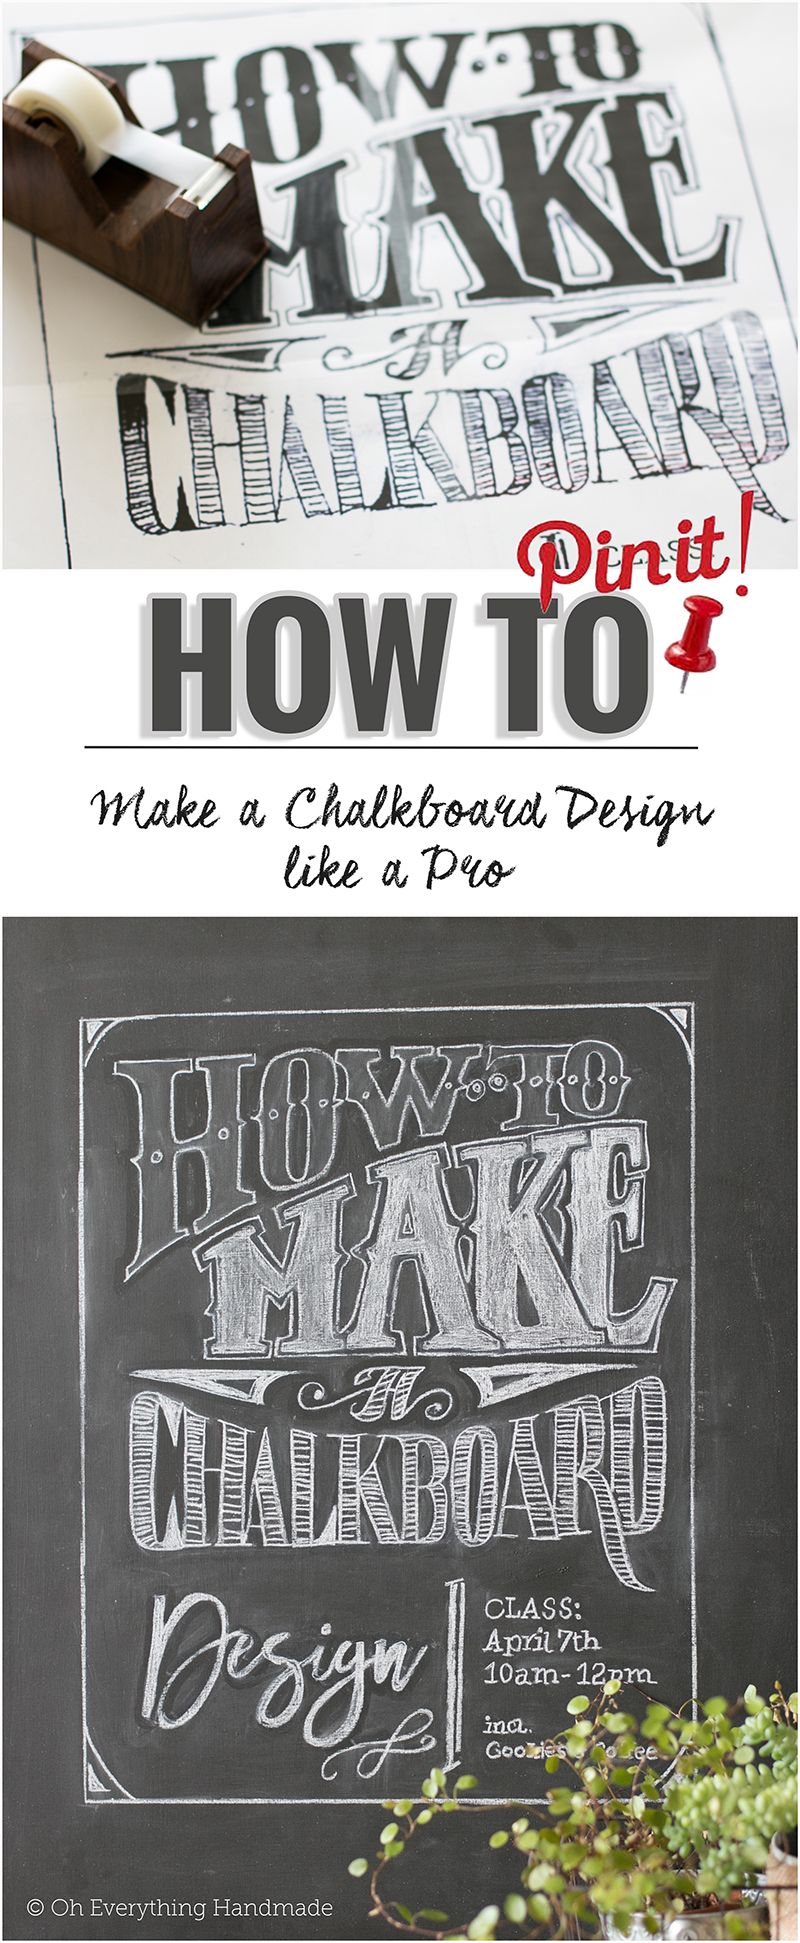 Hi There, I Canu0027t Wait To Share How To Make A Chalkboard Design